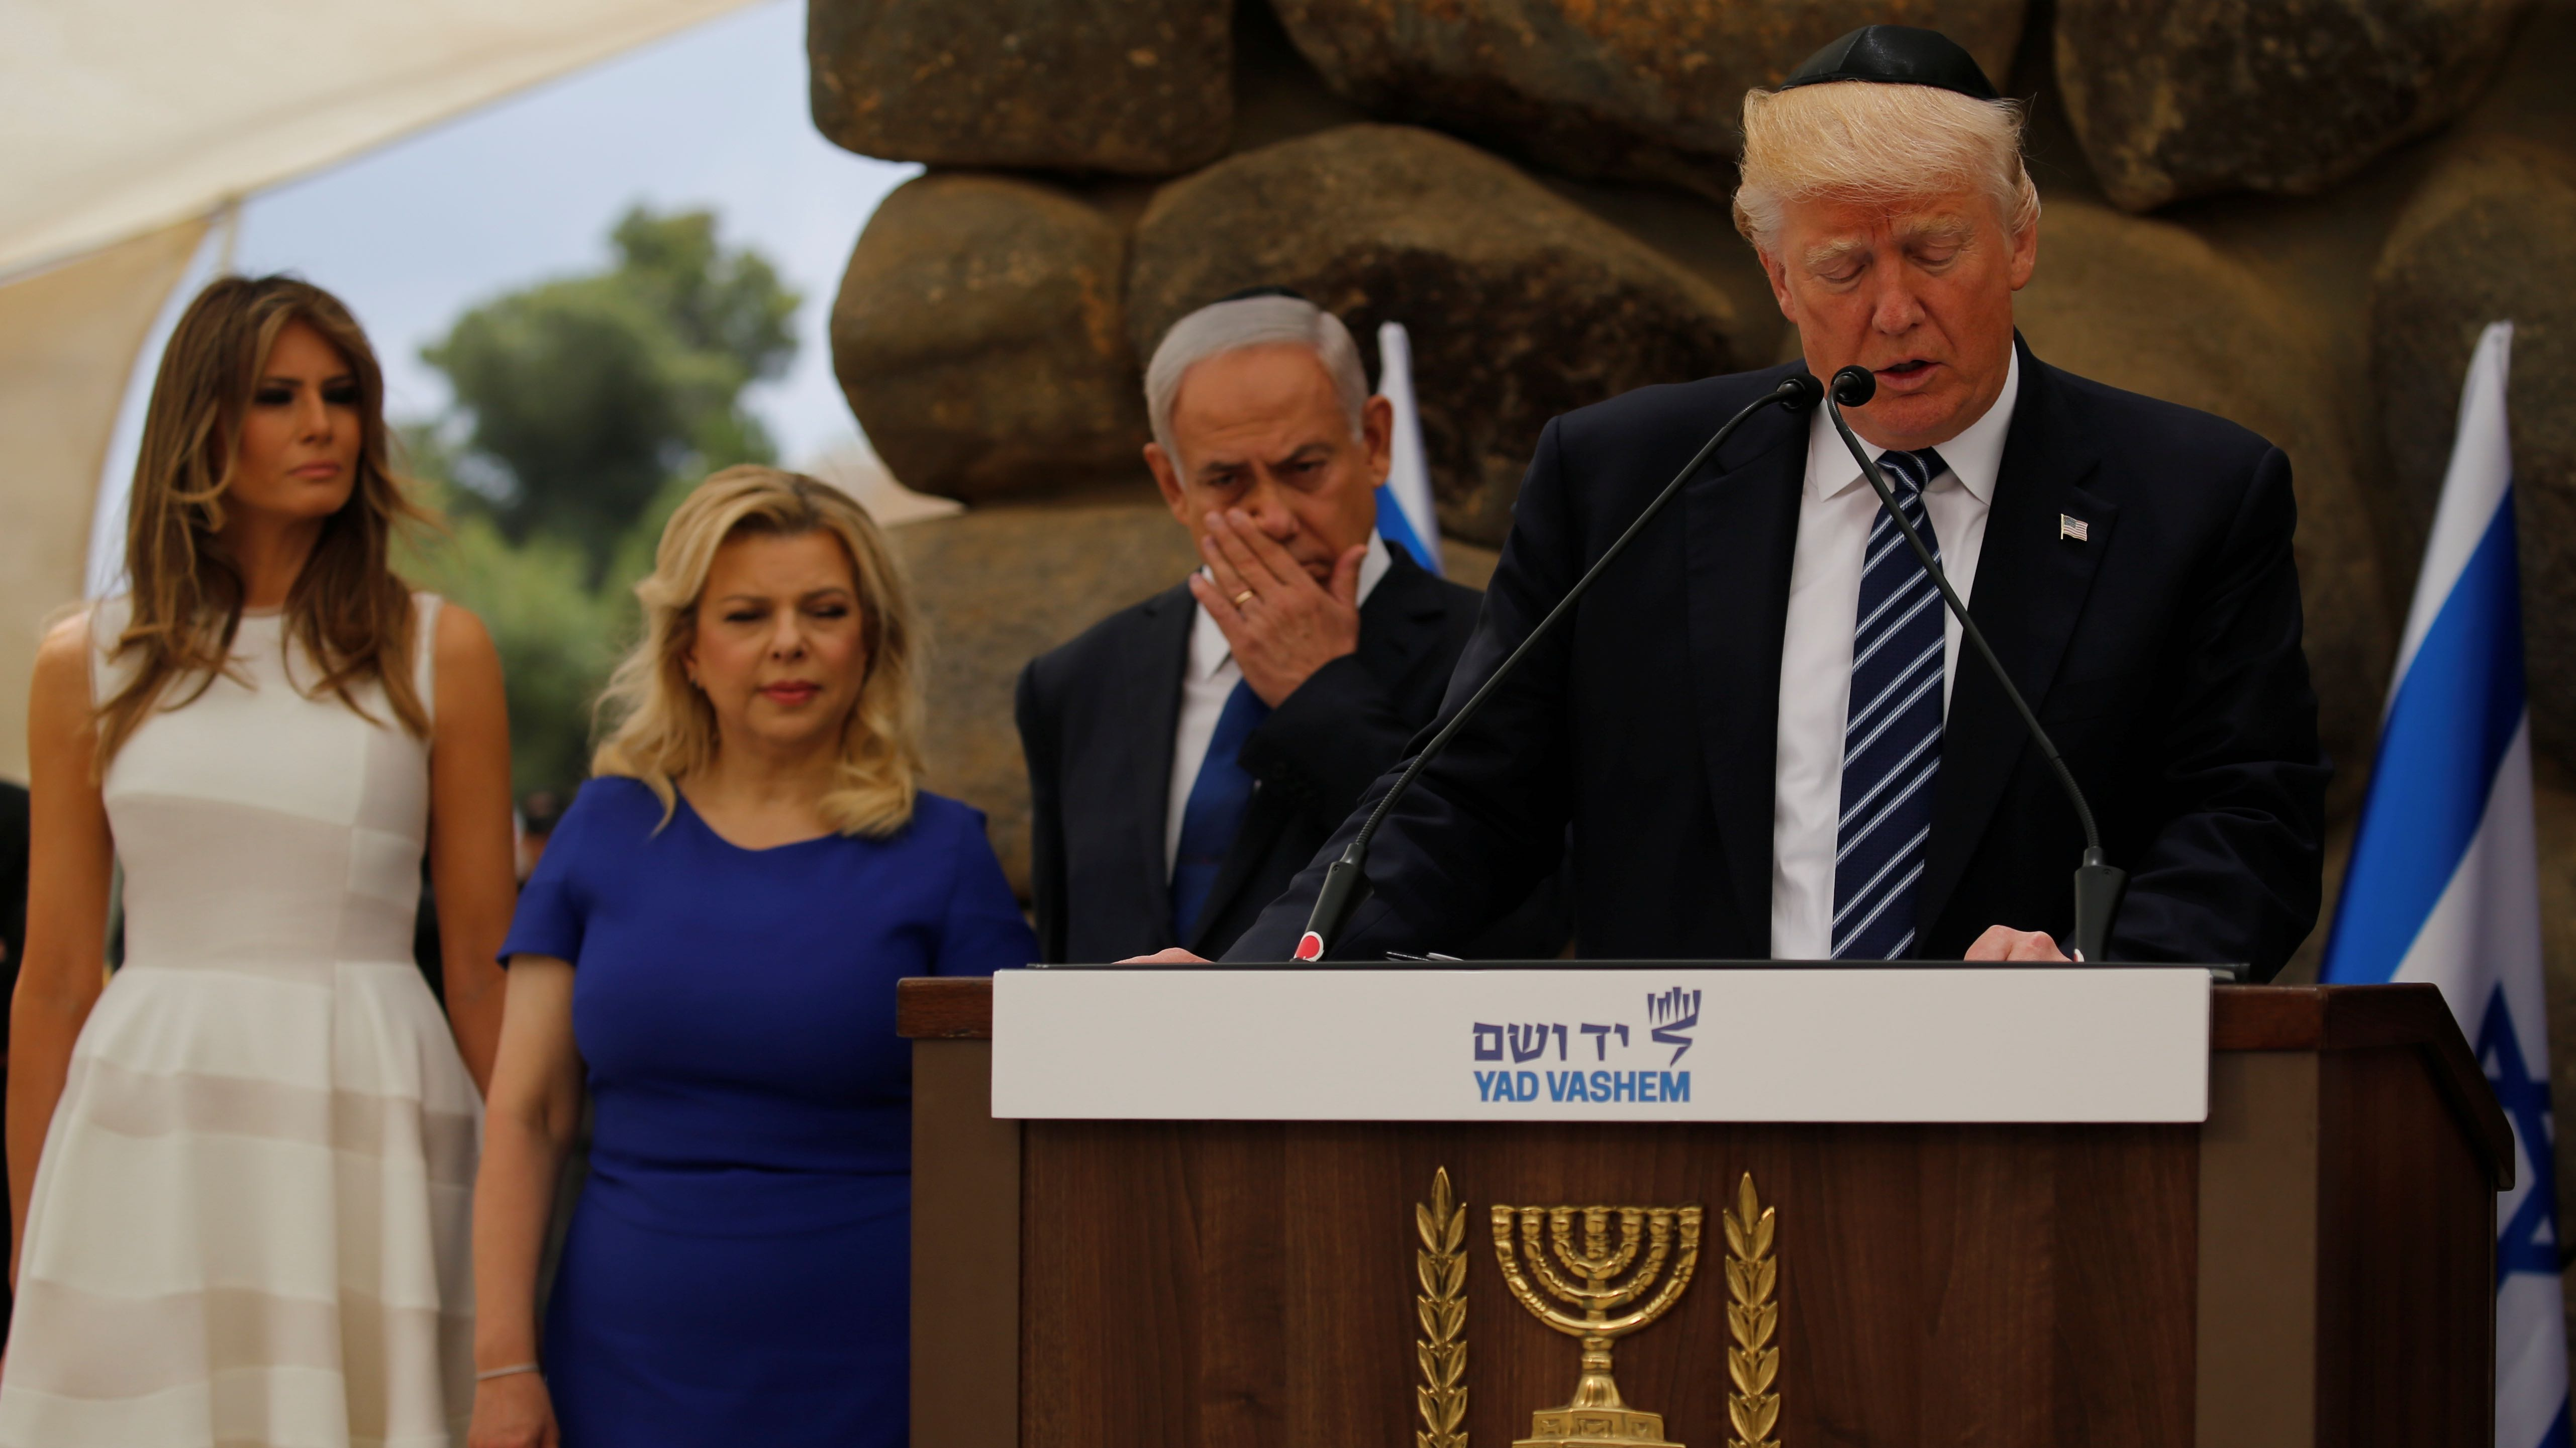 The complete timeline of awkward moments from Trump's two days in Israel